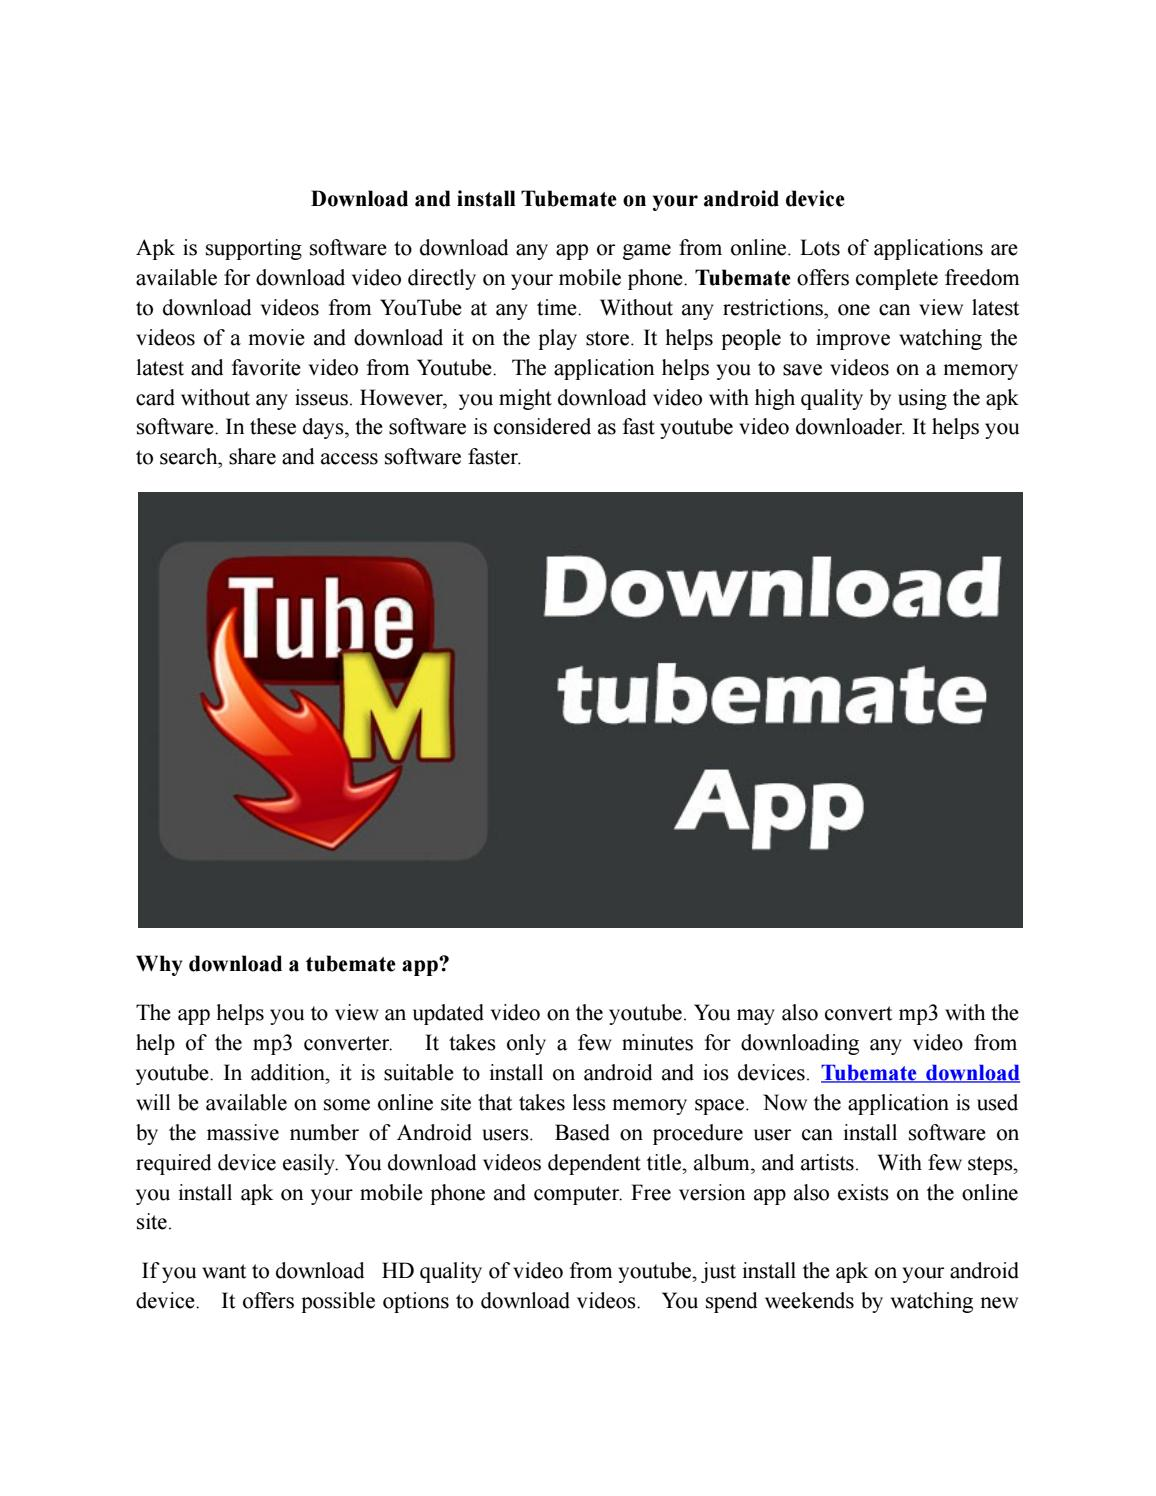 Download and install tubemate on your android device by